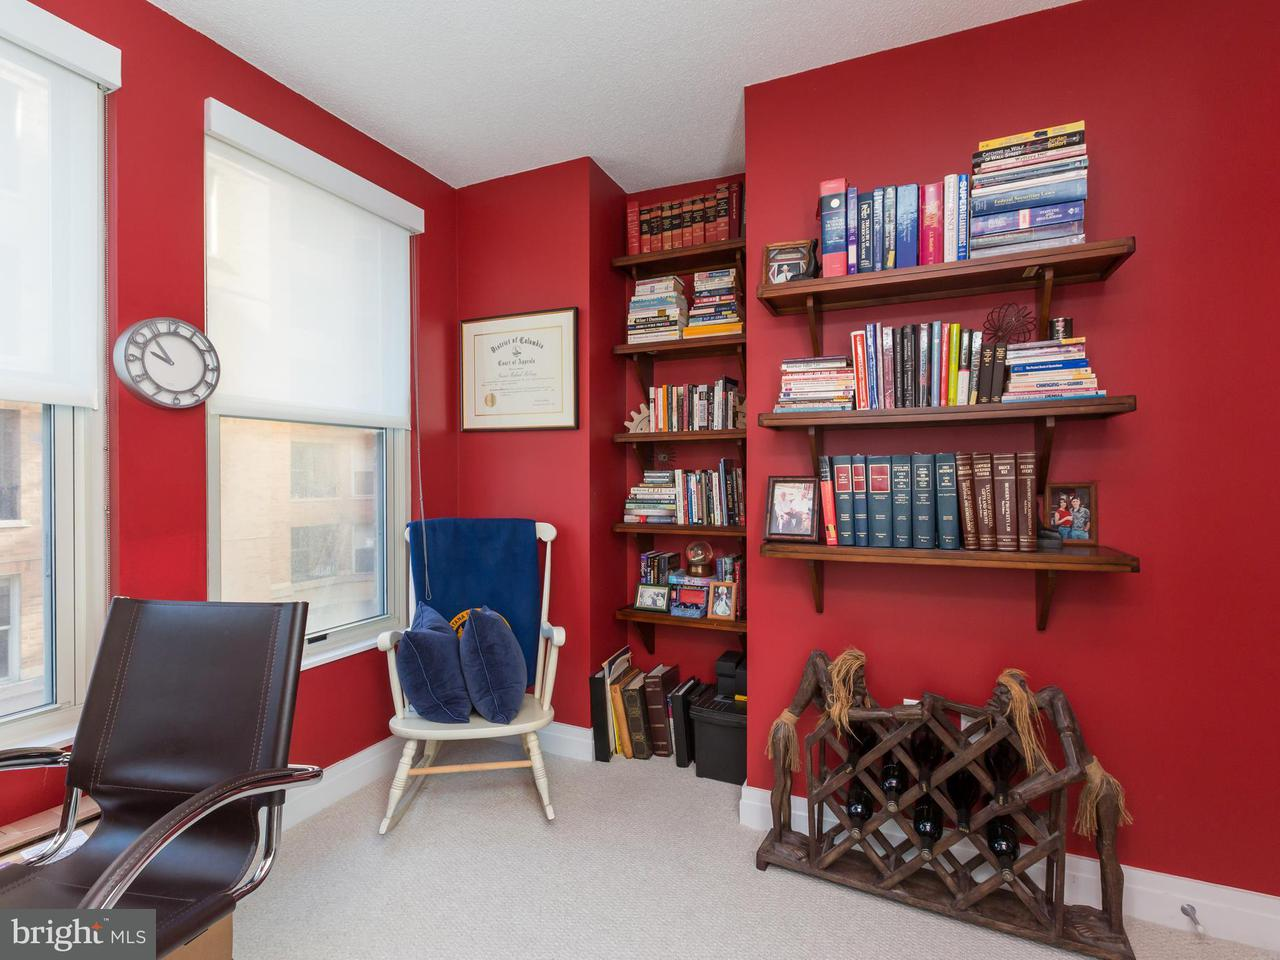 Additional photo for property listing at 915 E St NW #613  Washington, District Of Columbia 20004 United States